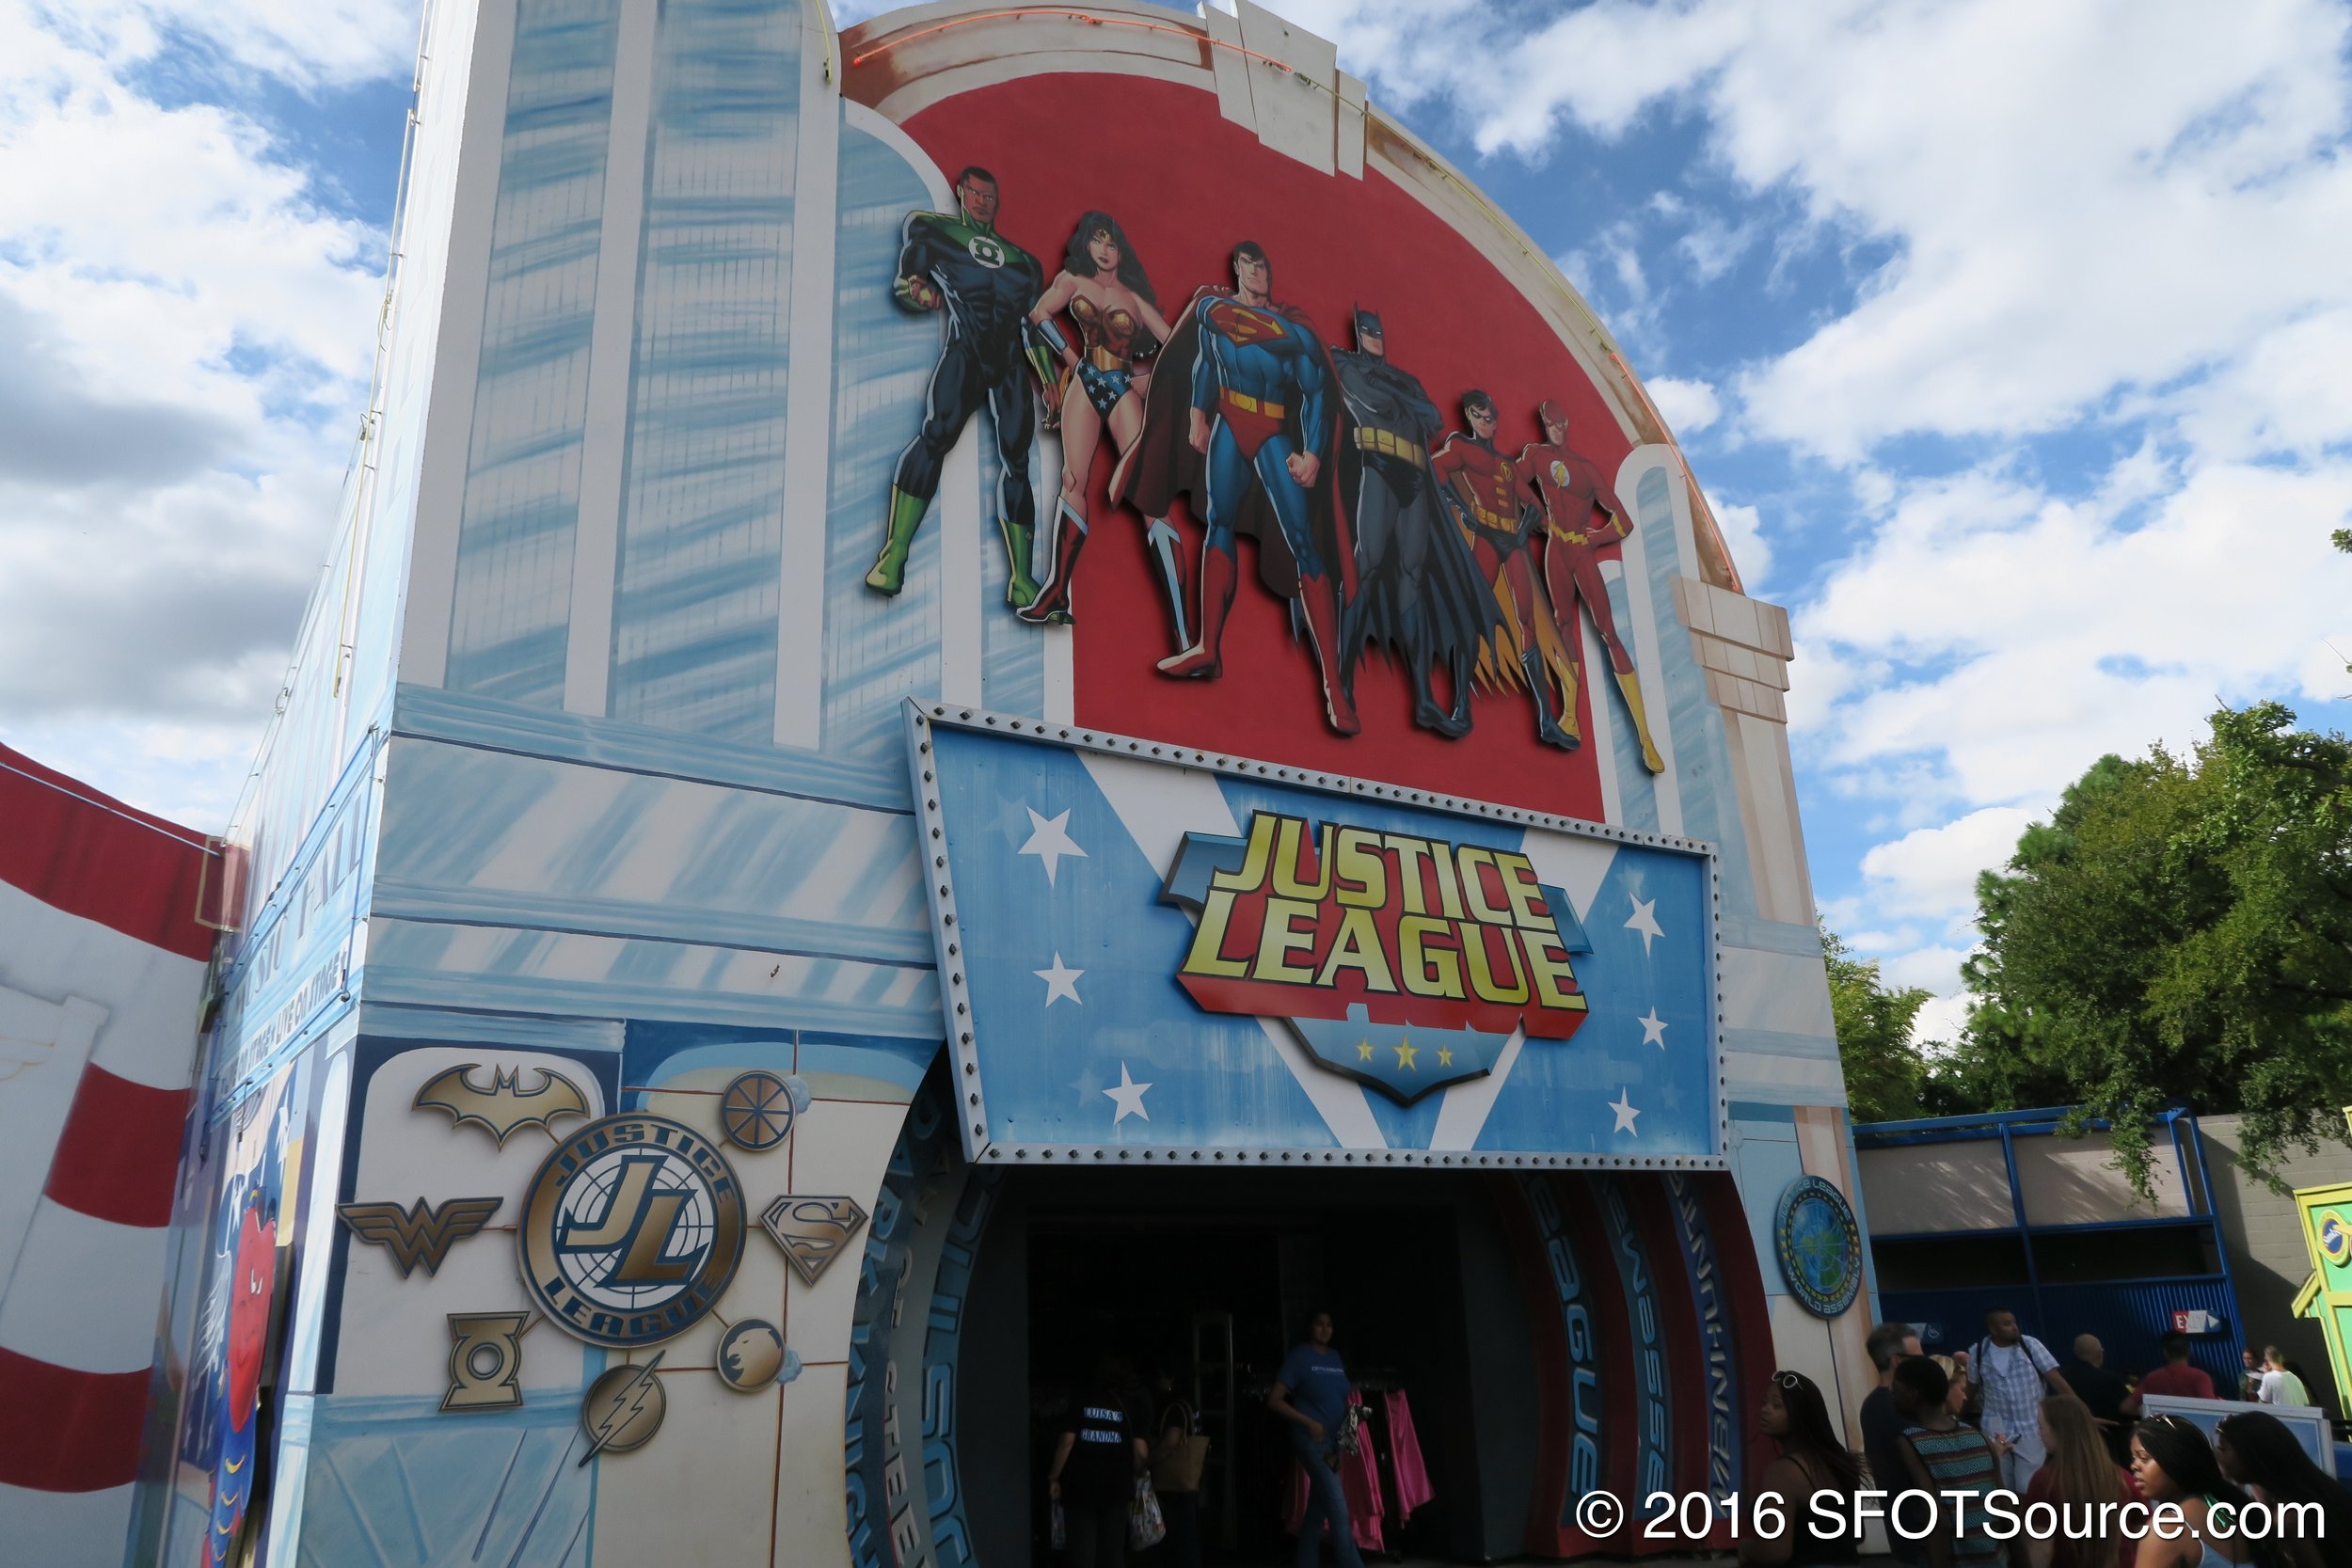 Part of Looney Tunes mall is full of Justice League merchandise.